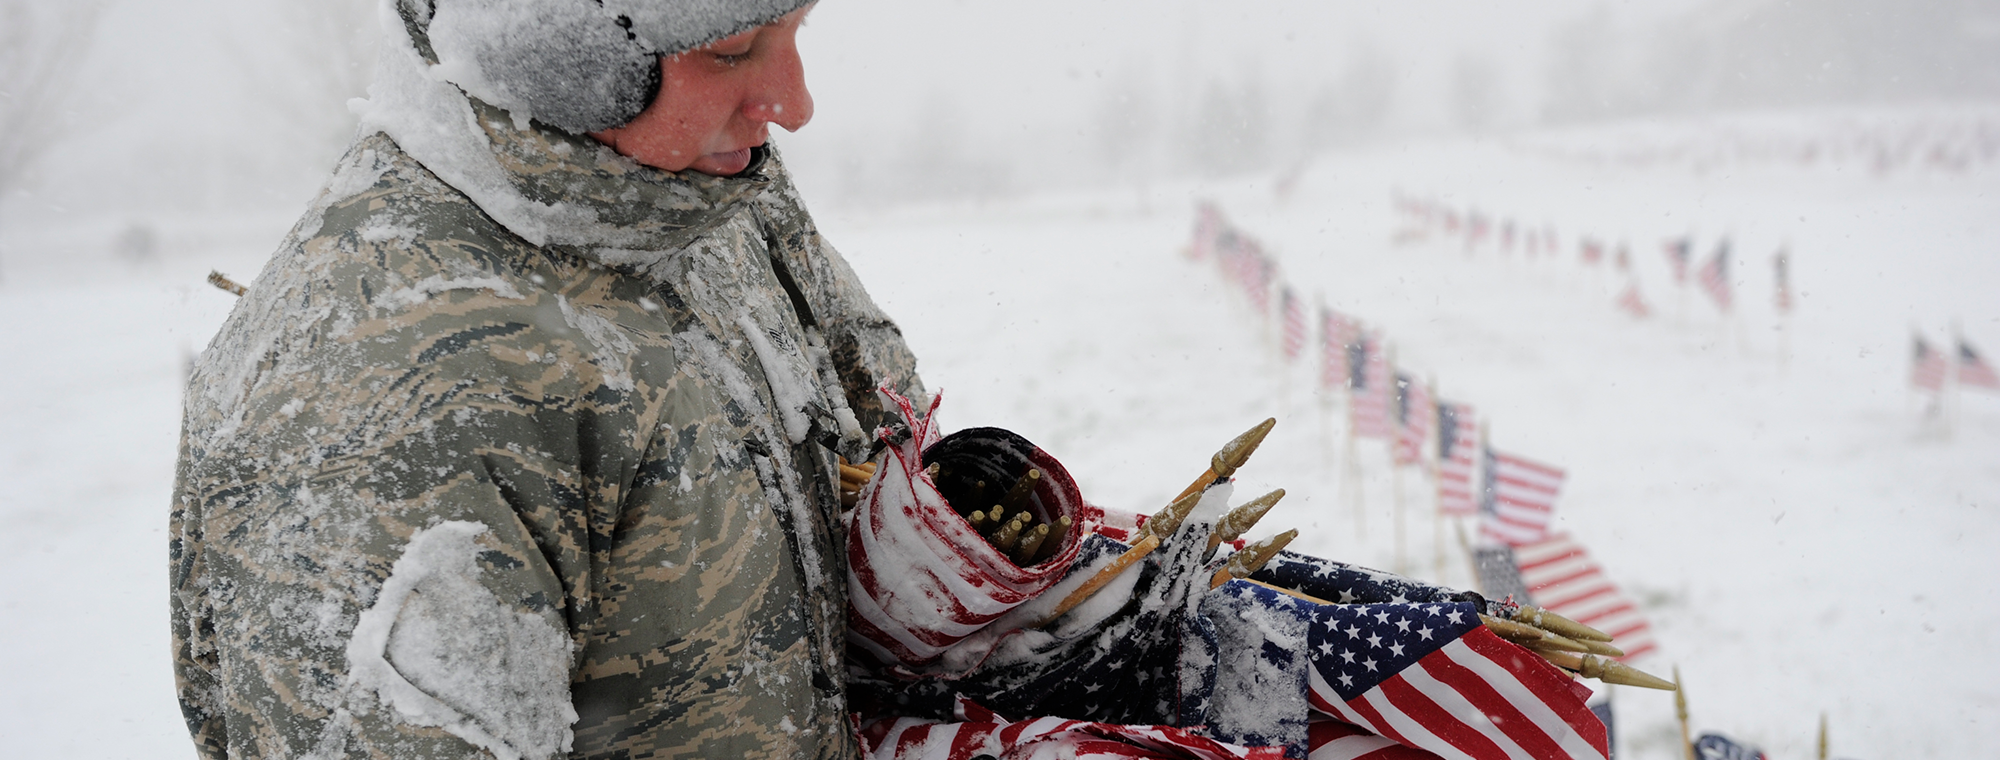 US Air Force Tech. Sgt. Sara Bauer, 388th CMS, holds a bunch of American flags during a volunteer opportunity at the Veterans Memorial Park, Bluffdale, Utah, Nov. 9, 2012